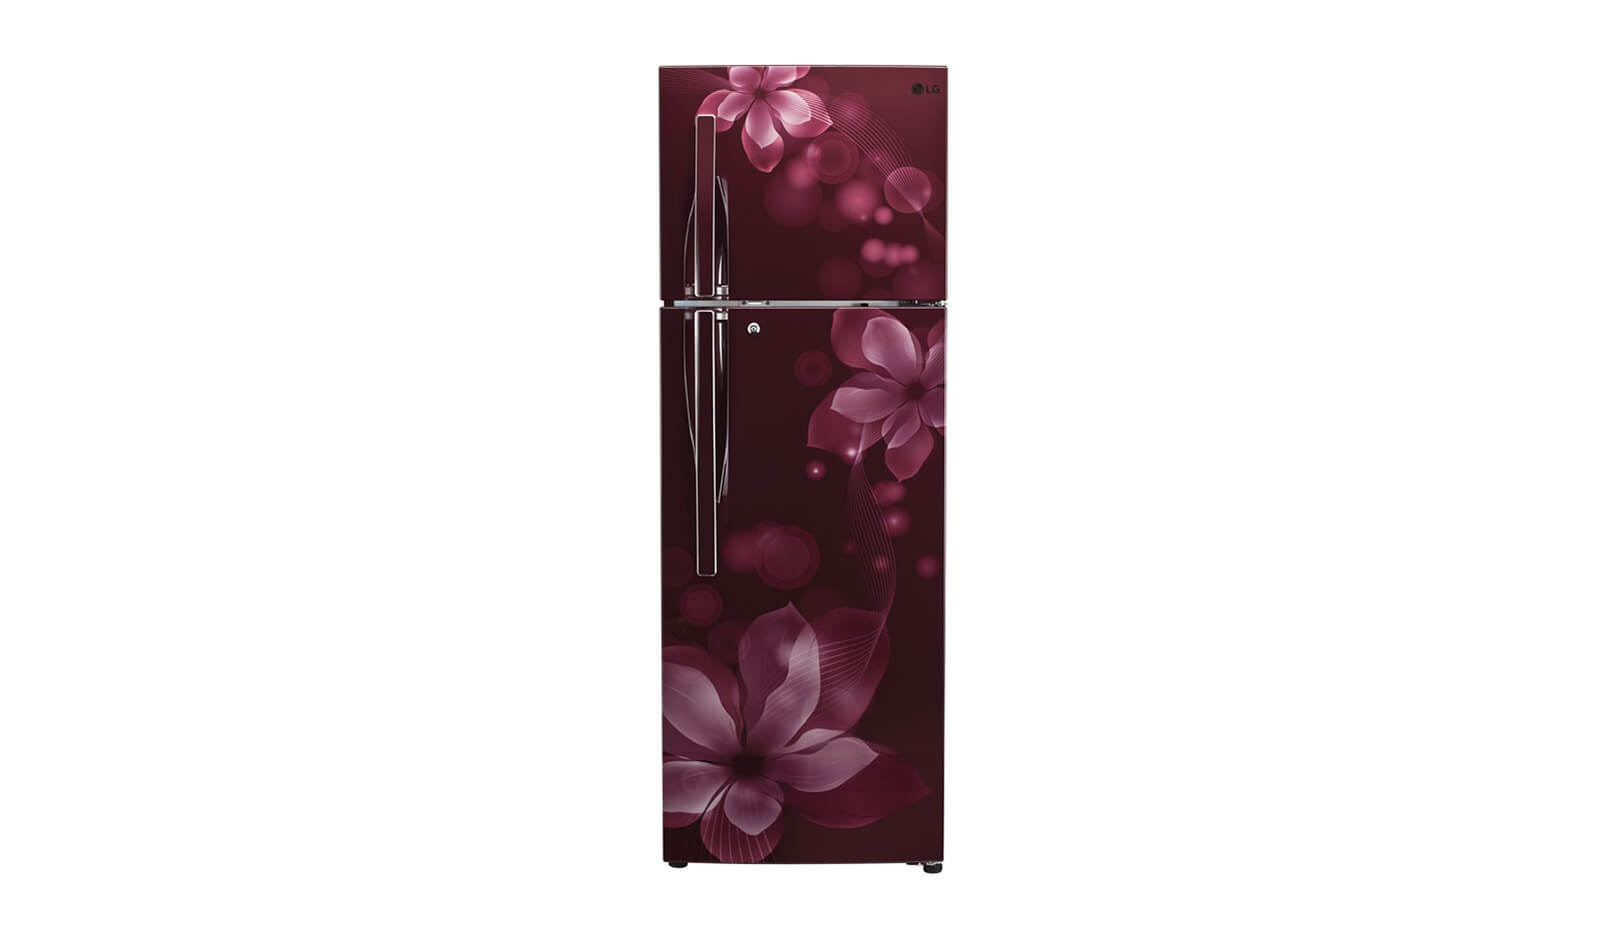 LG 260 L 3 Star Frost-Free Double-Door Refrigerator (GL-T292RSOU, Scarlet Orchid)